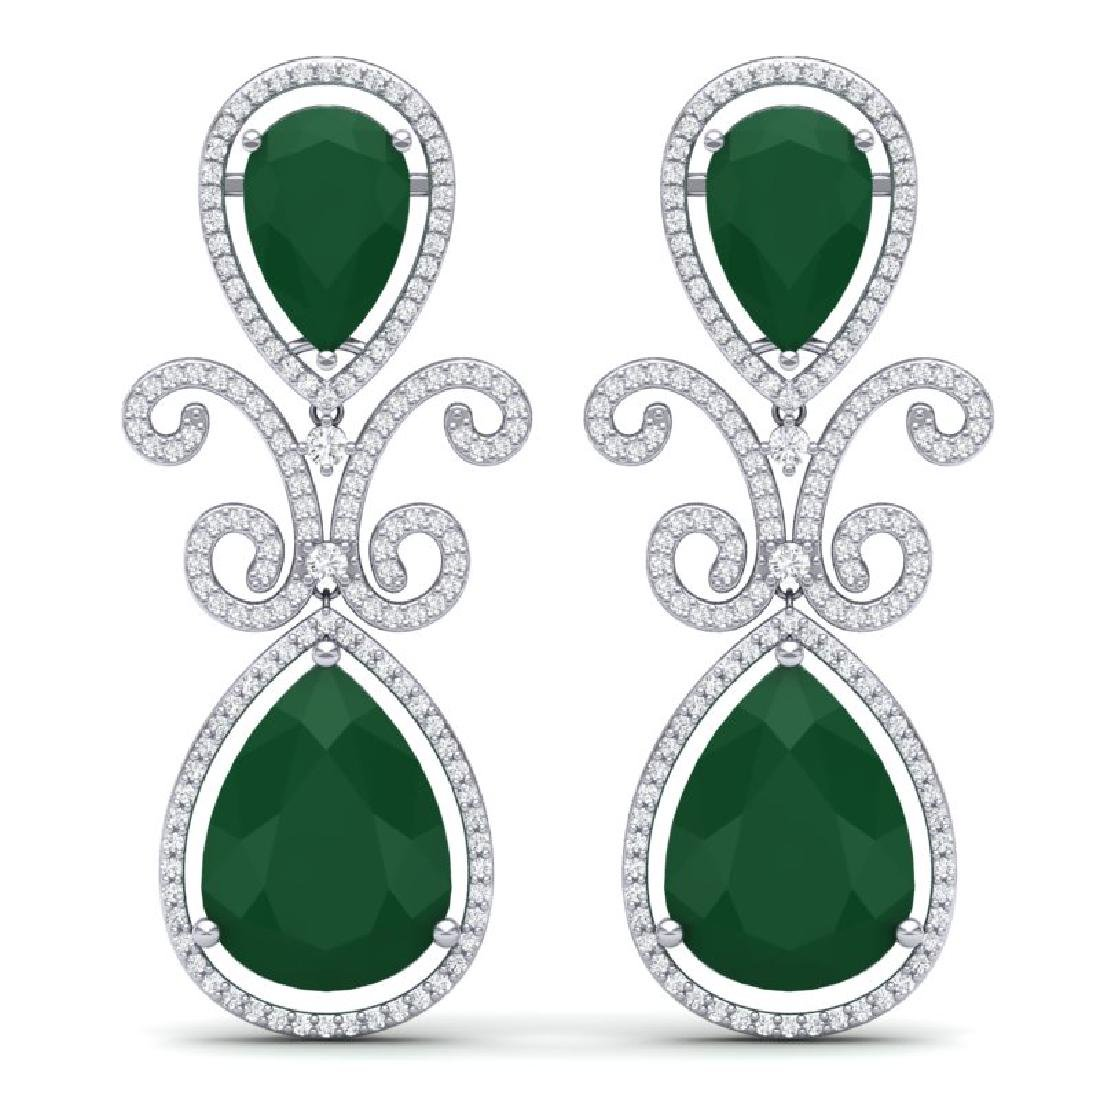 31.6 CTW Royalty Emerald & VS Diamond Earrings 18K